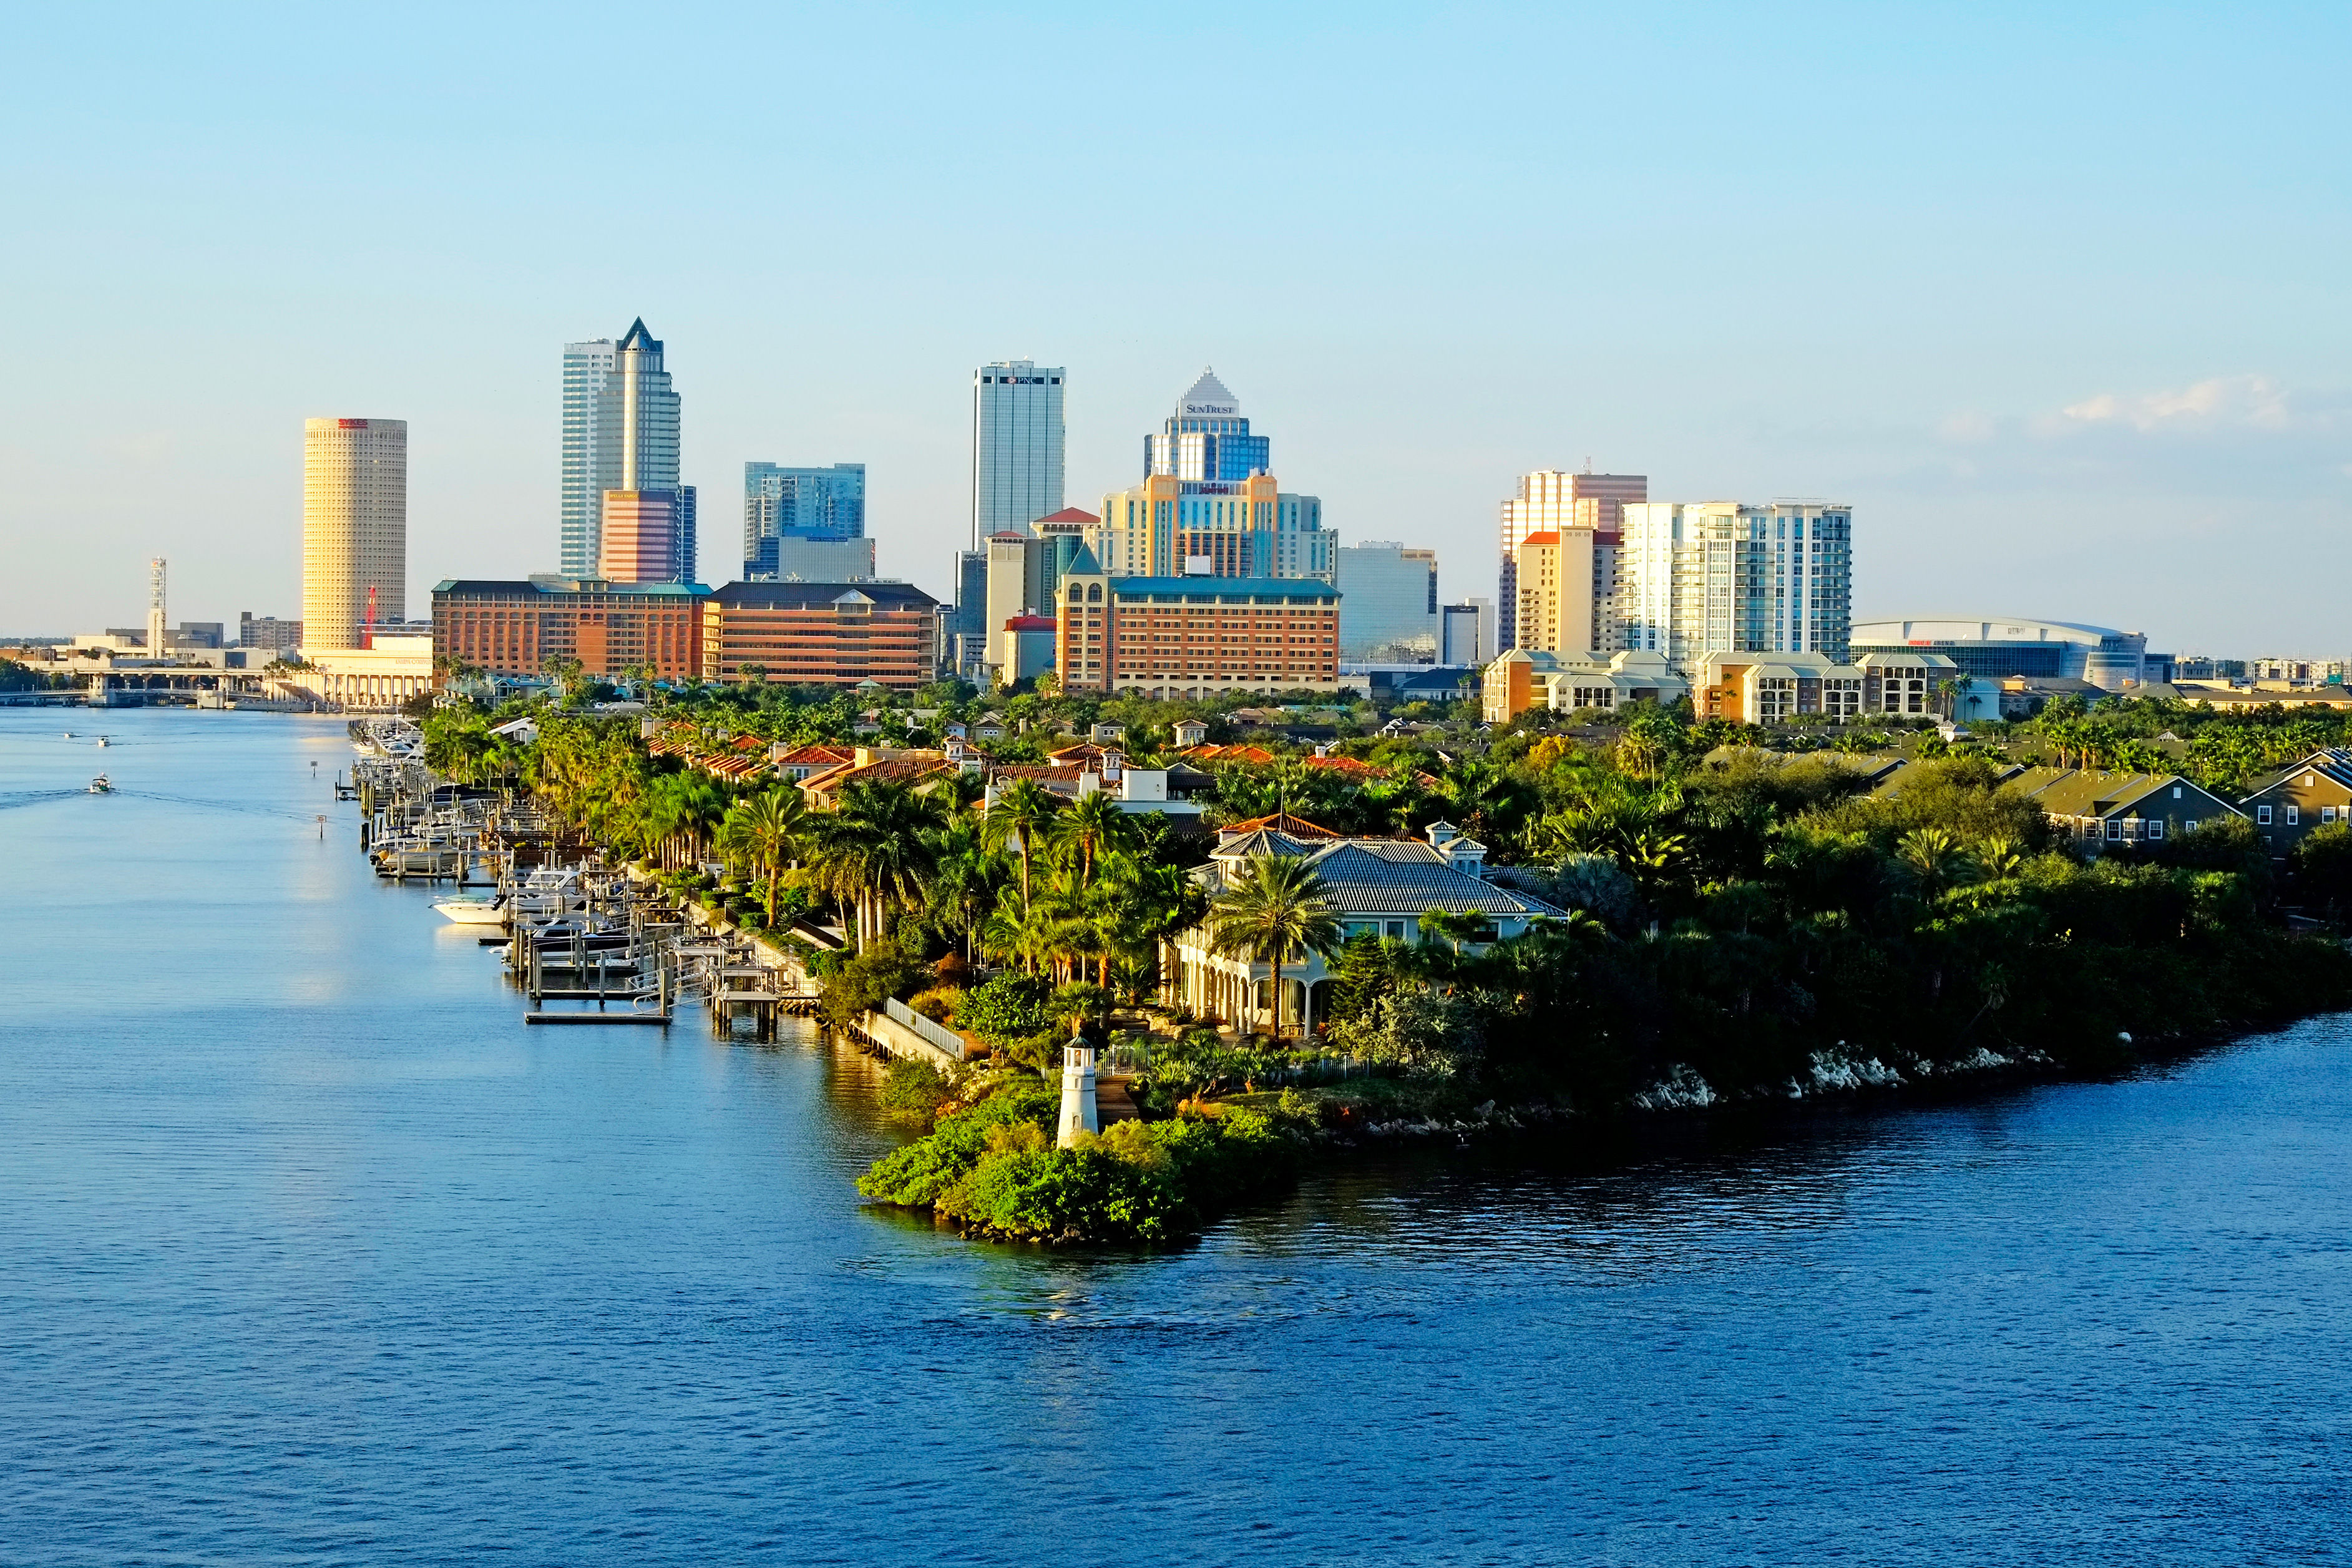 tampa-florida-skyline-2-539787631